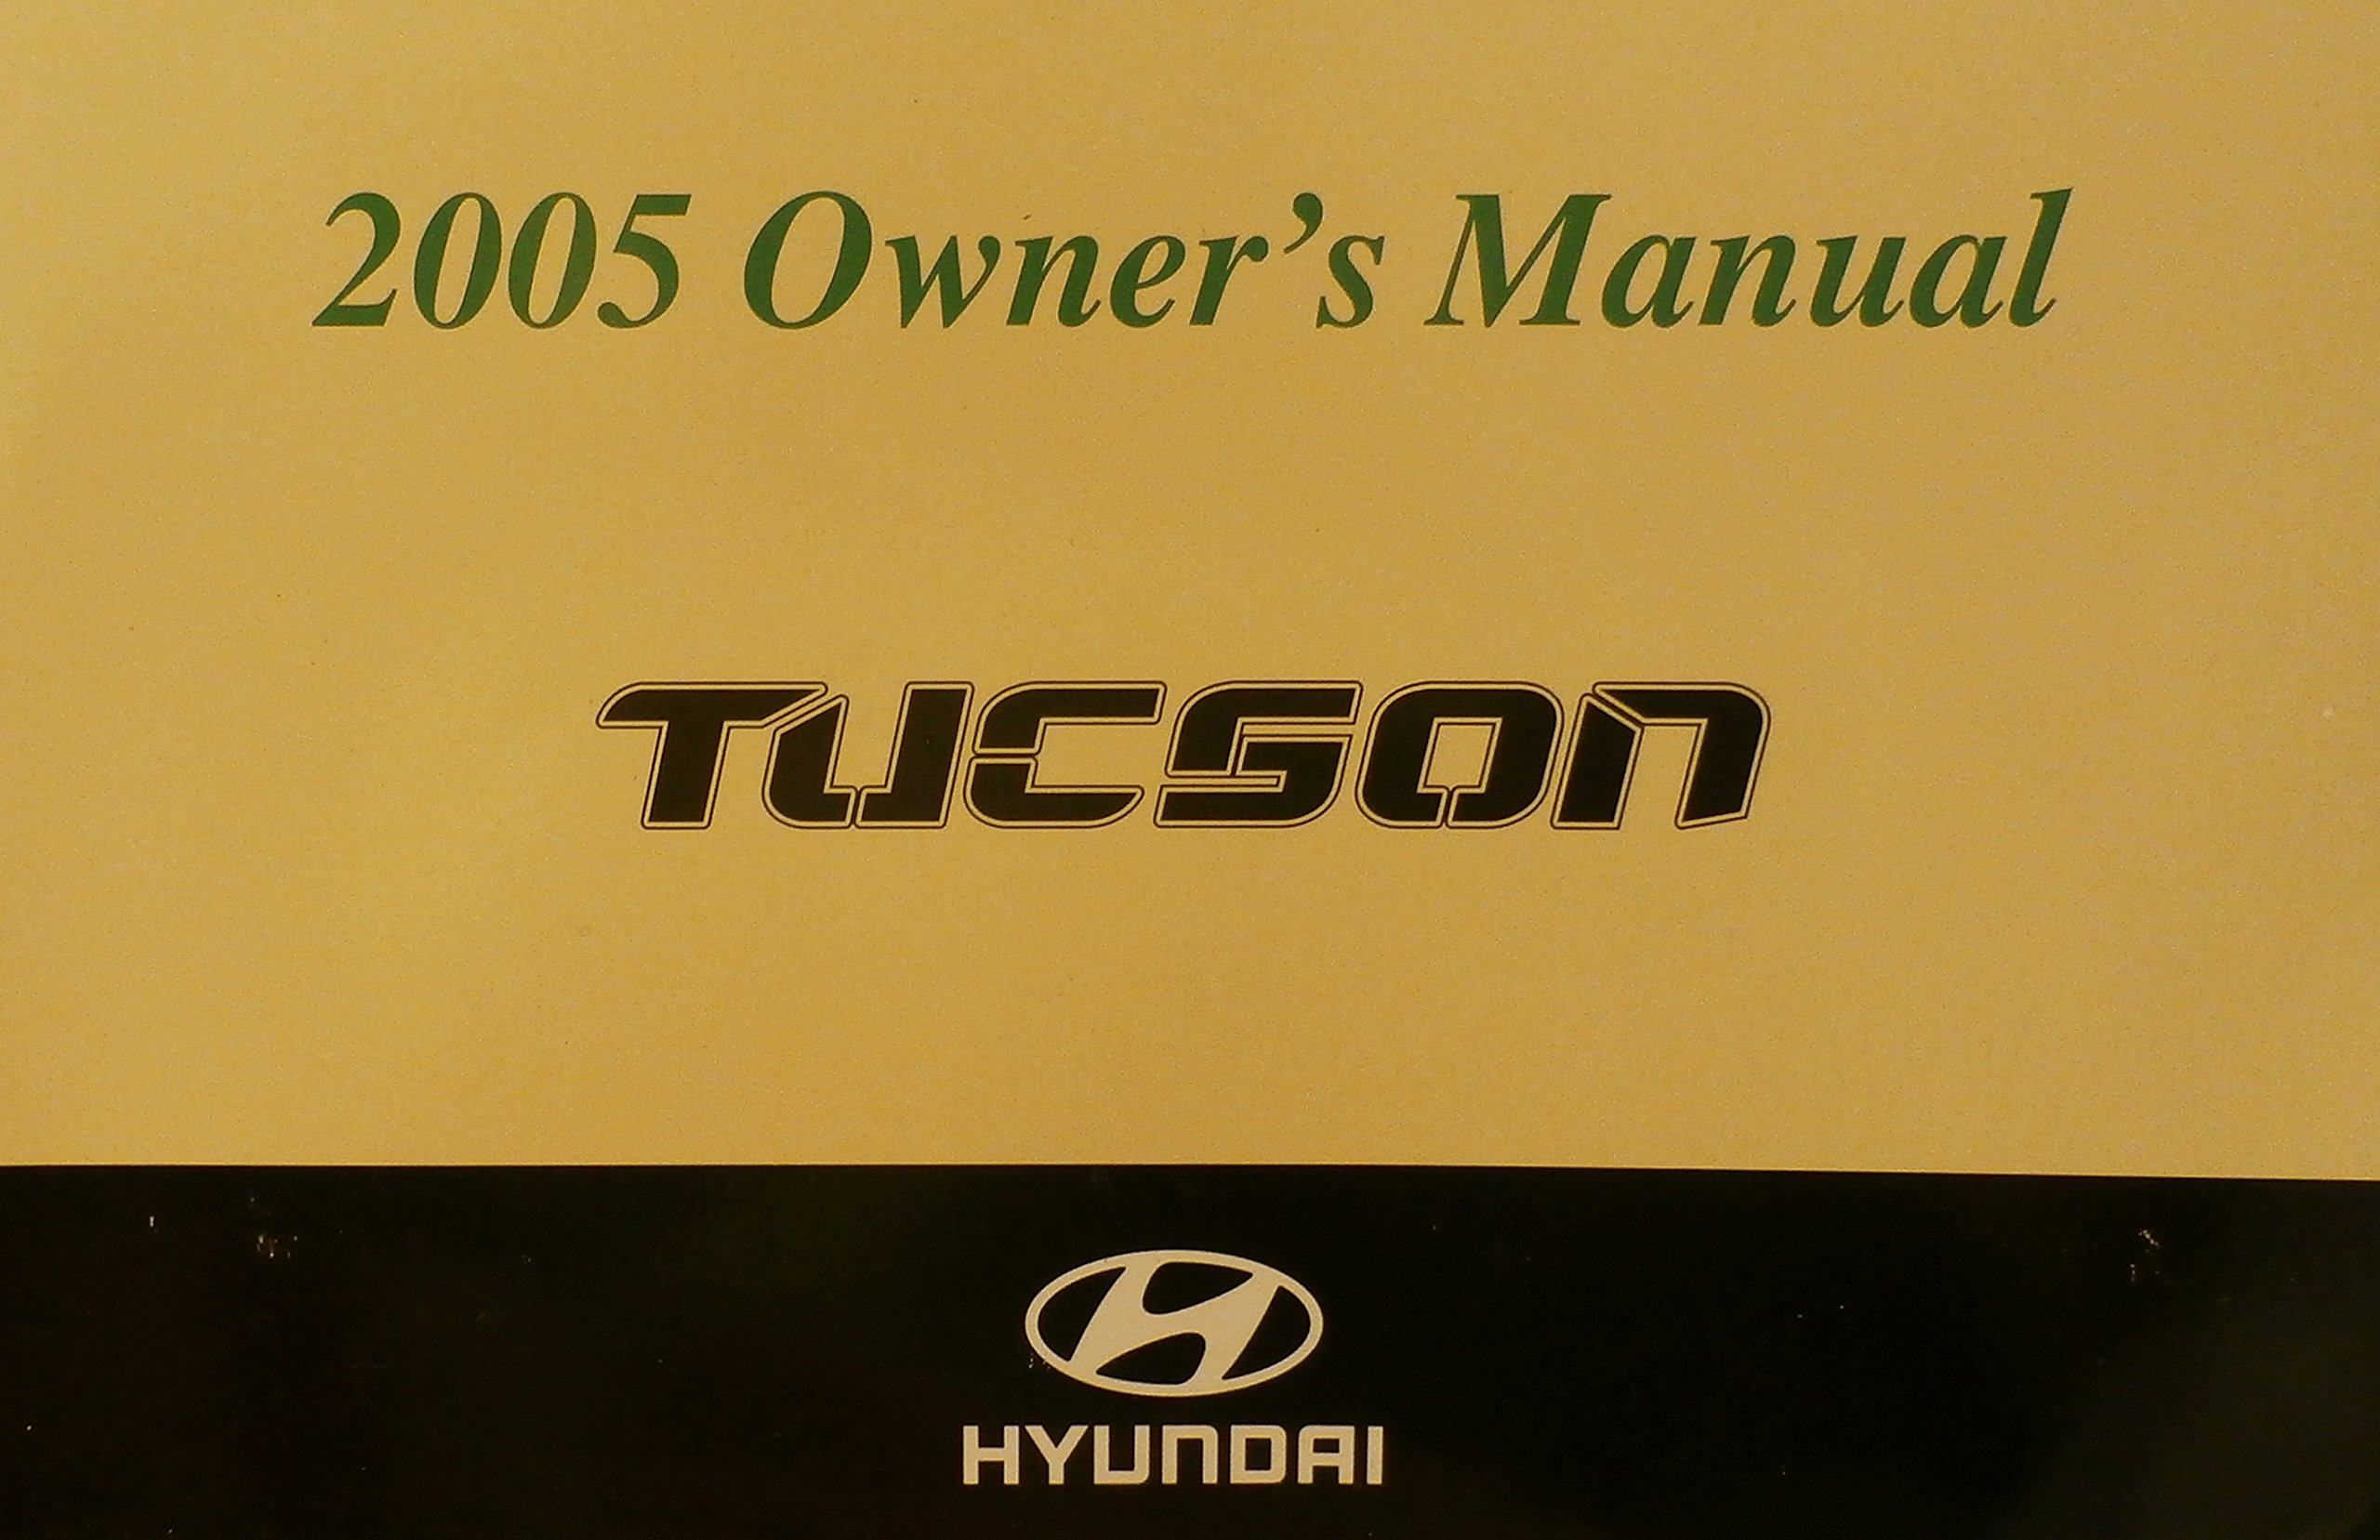 2005 hyundai tucson owners manual hyundai amazon com books rh amazon com Hyundai Golf Cart Service Manual Hyundai Golf Cart Service Manual